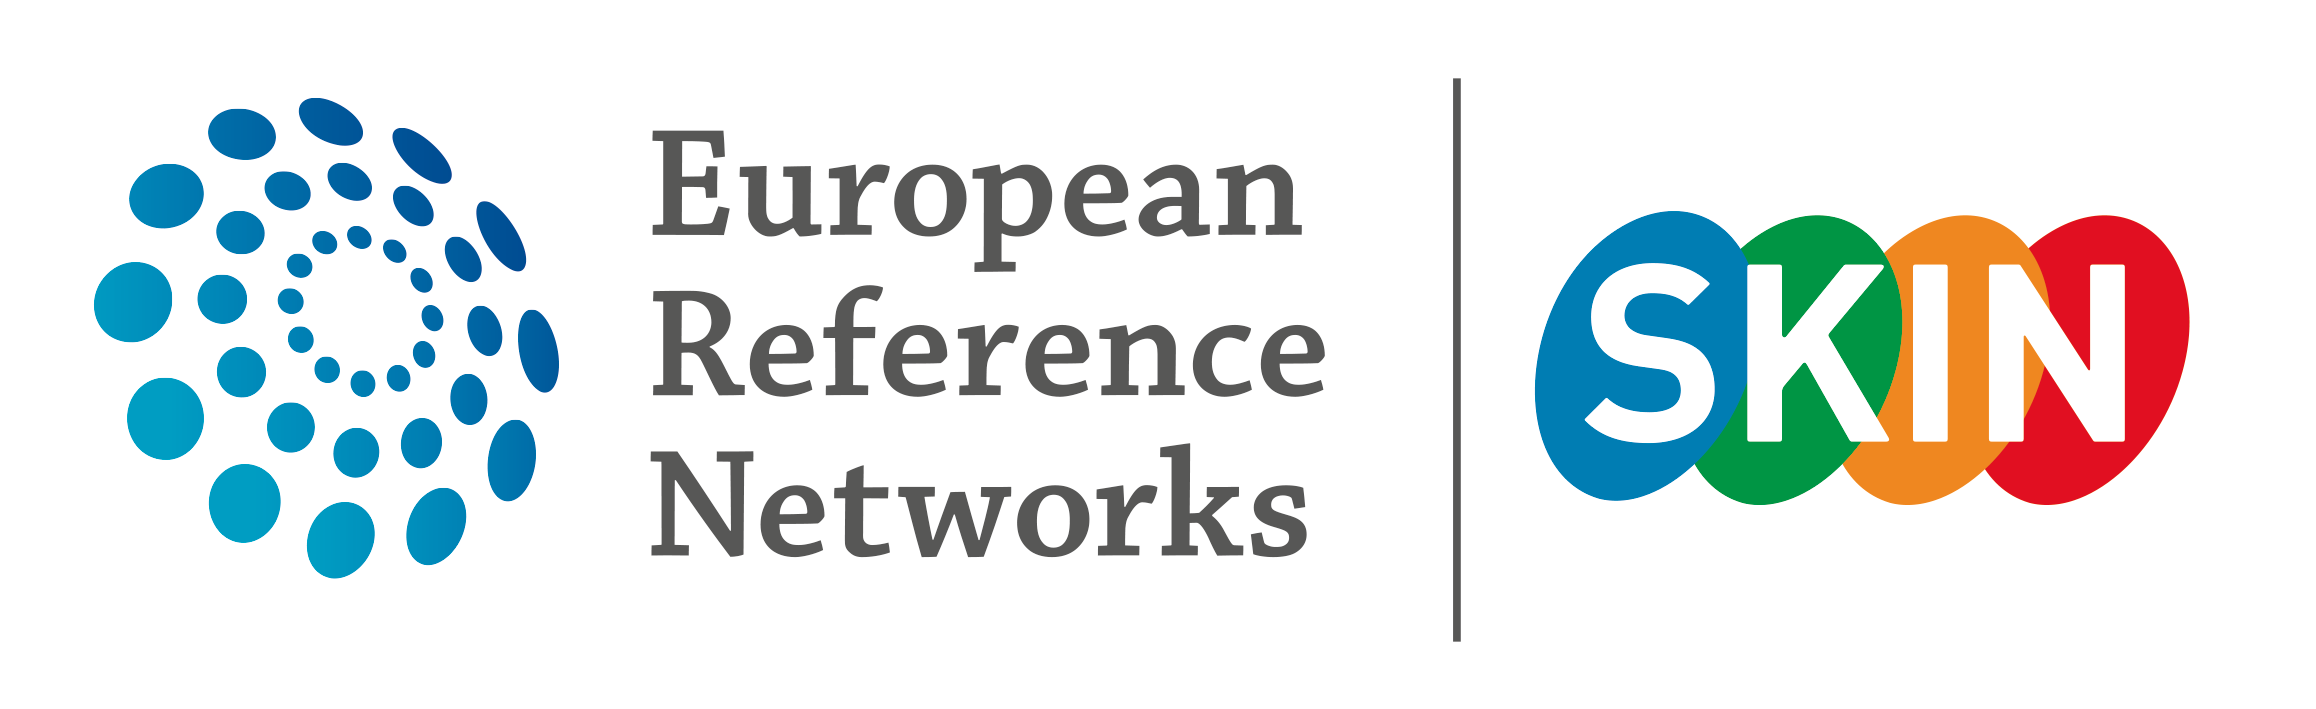 ERN, European reference networks, SKIN, EB2020, EB Congress, EB World Congress, Blisters, Genetic, Skin cancer, Infection